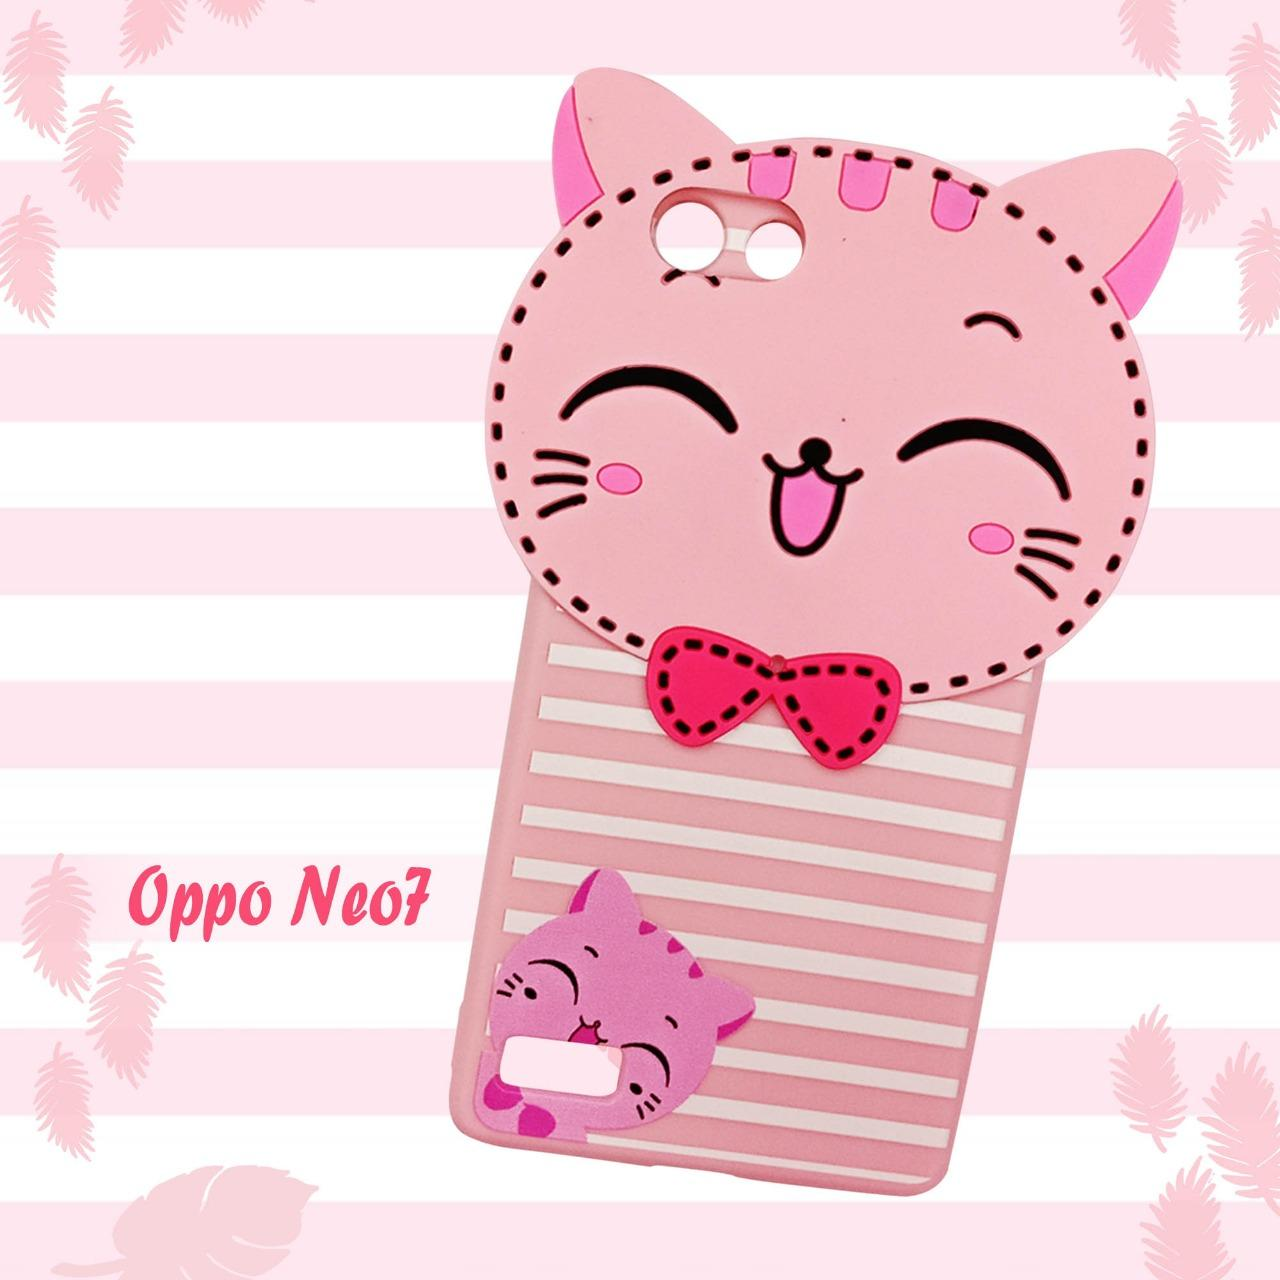 Cek Harga Baru Softcase Caracter Timbul For Oppo Neo 7 Terkini Luxo 9 A37 Hardcase Back Case Motif Batik Animals Cat Teddy Pink New